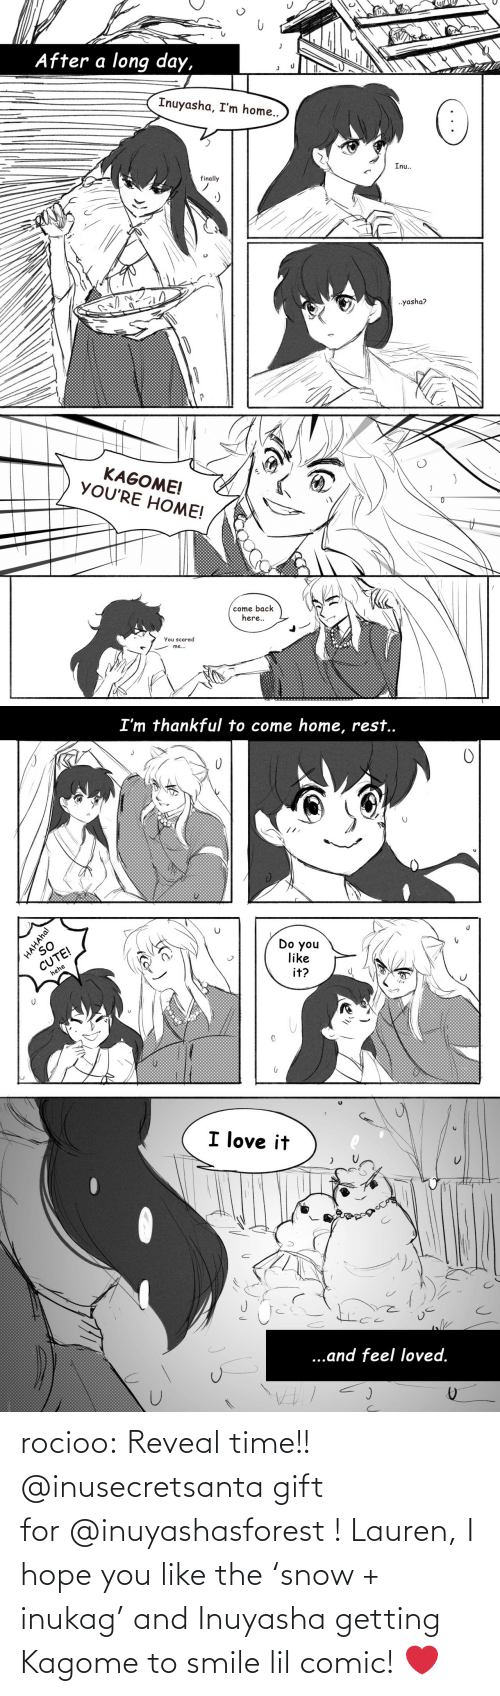 Reveal: rocioo: Reveal time!! @inusecretsanta gift for @inuyashasforest ! Lauren, I hope you like the 'snow + inukag' and Inuyasha getting Kagome to smile lil comic! ❤